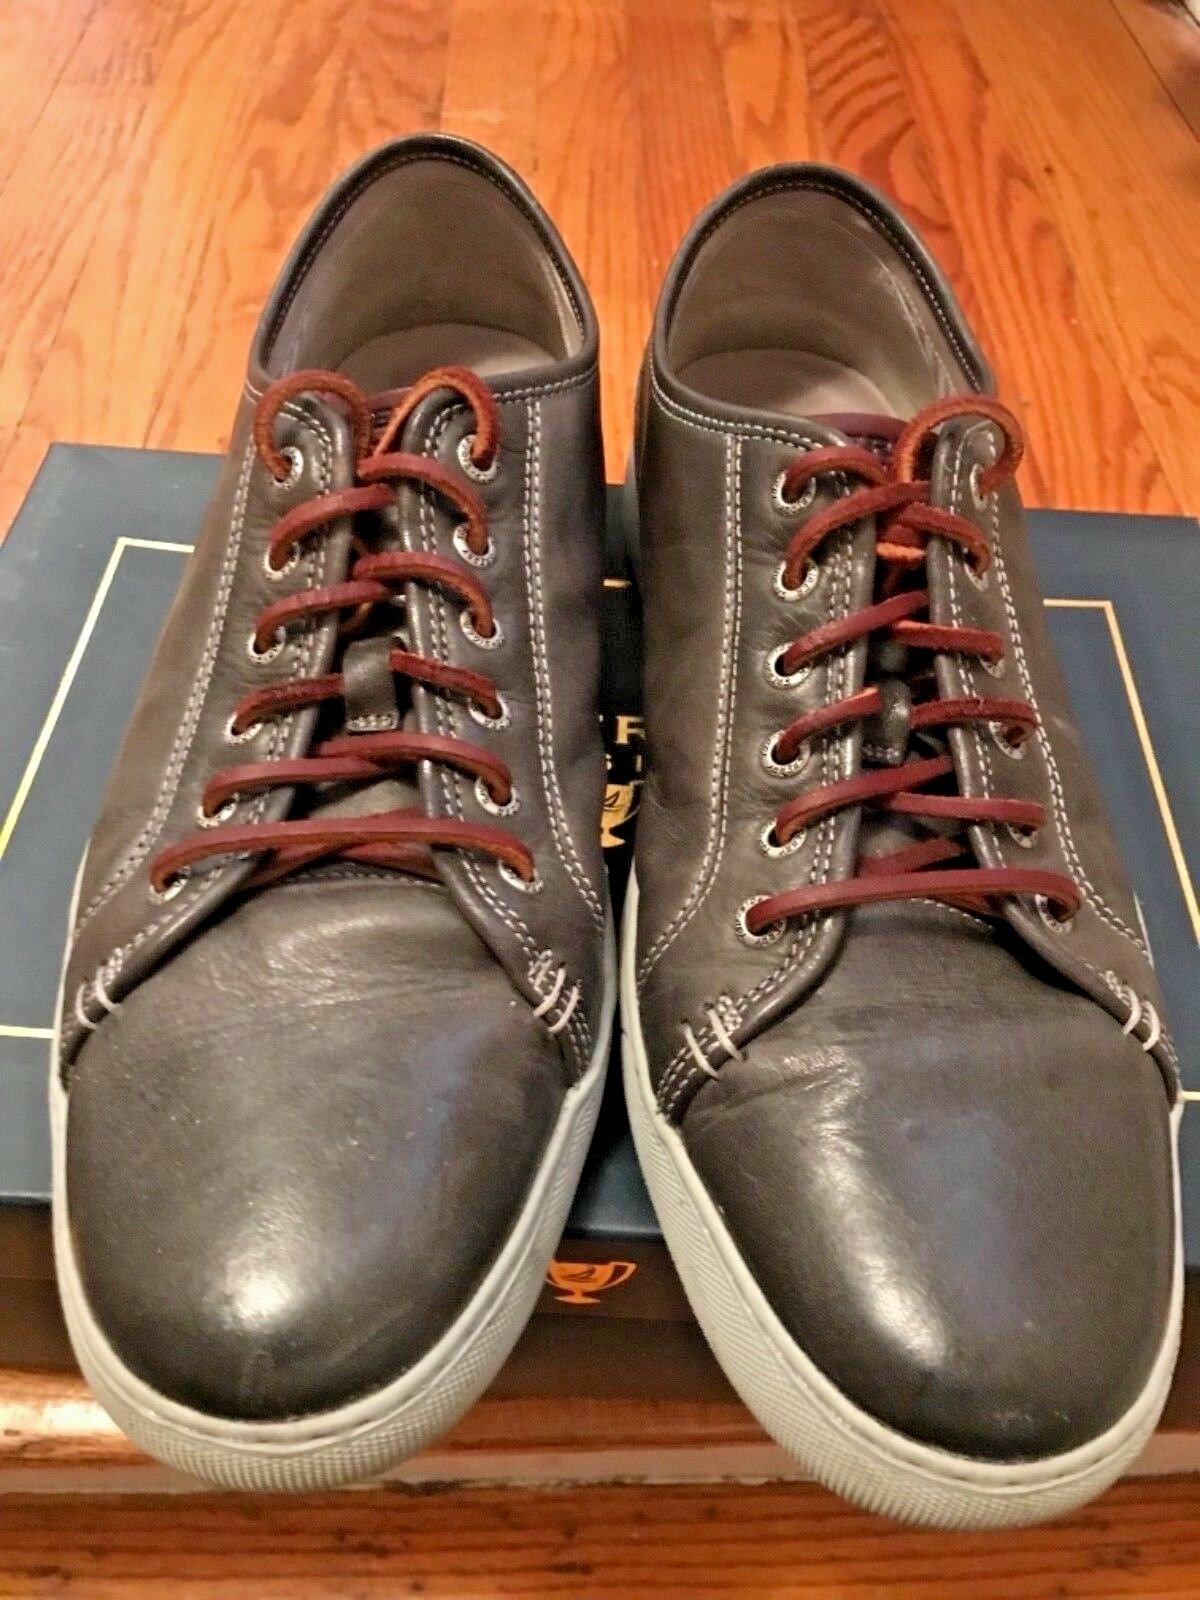 Gray Leather Causal Sneakers Sperry Top-Siders Men sz12 M